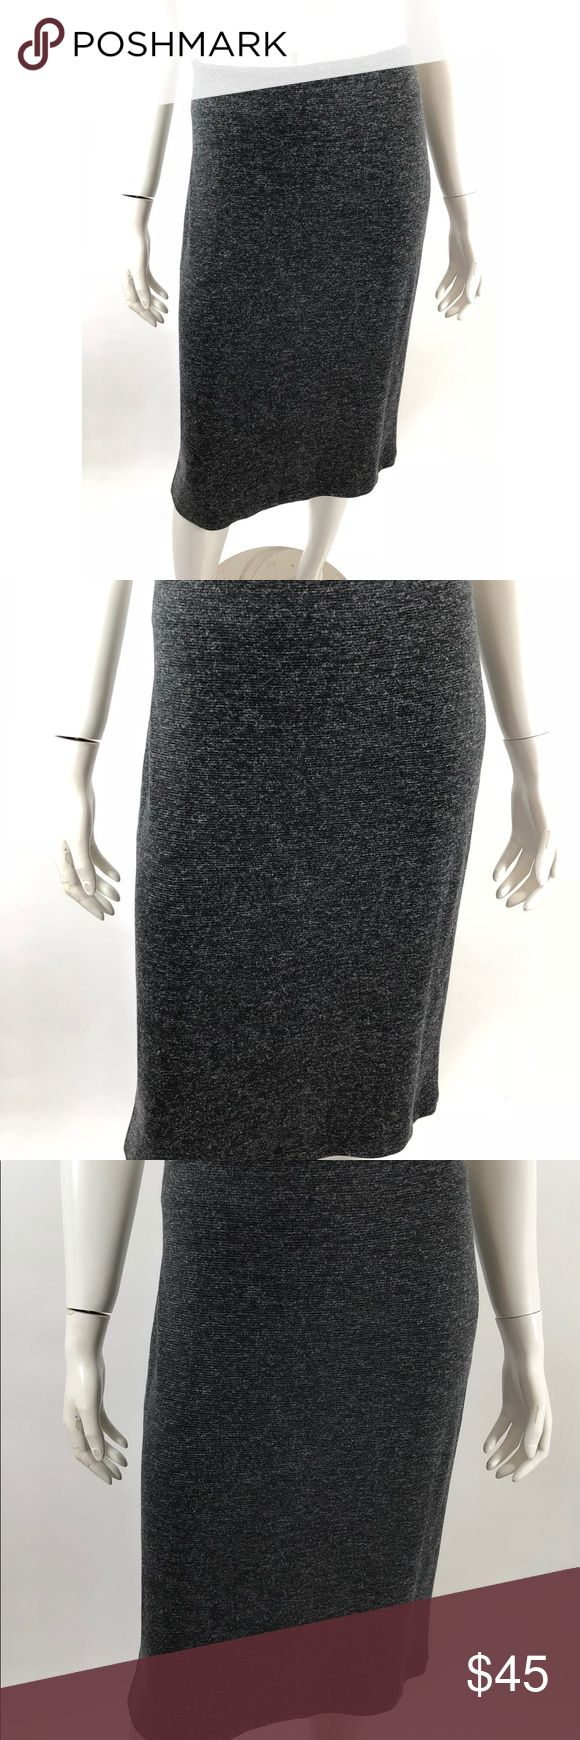 Calvin Klein Pencil Skirt Size Large Black Gray Calvin Klein Womens Pencil Skirt Size Large Black Gray Stretch Knee Length NEW. Measurements: In inches Waist:34 Length:26 Calvin Klein Skirts Pencil